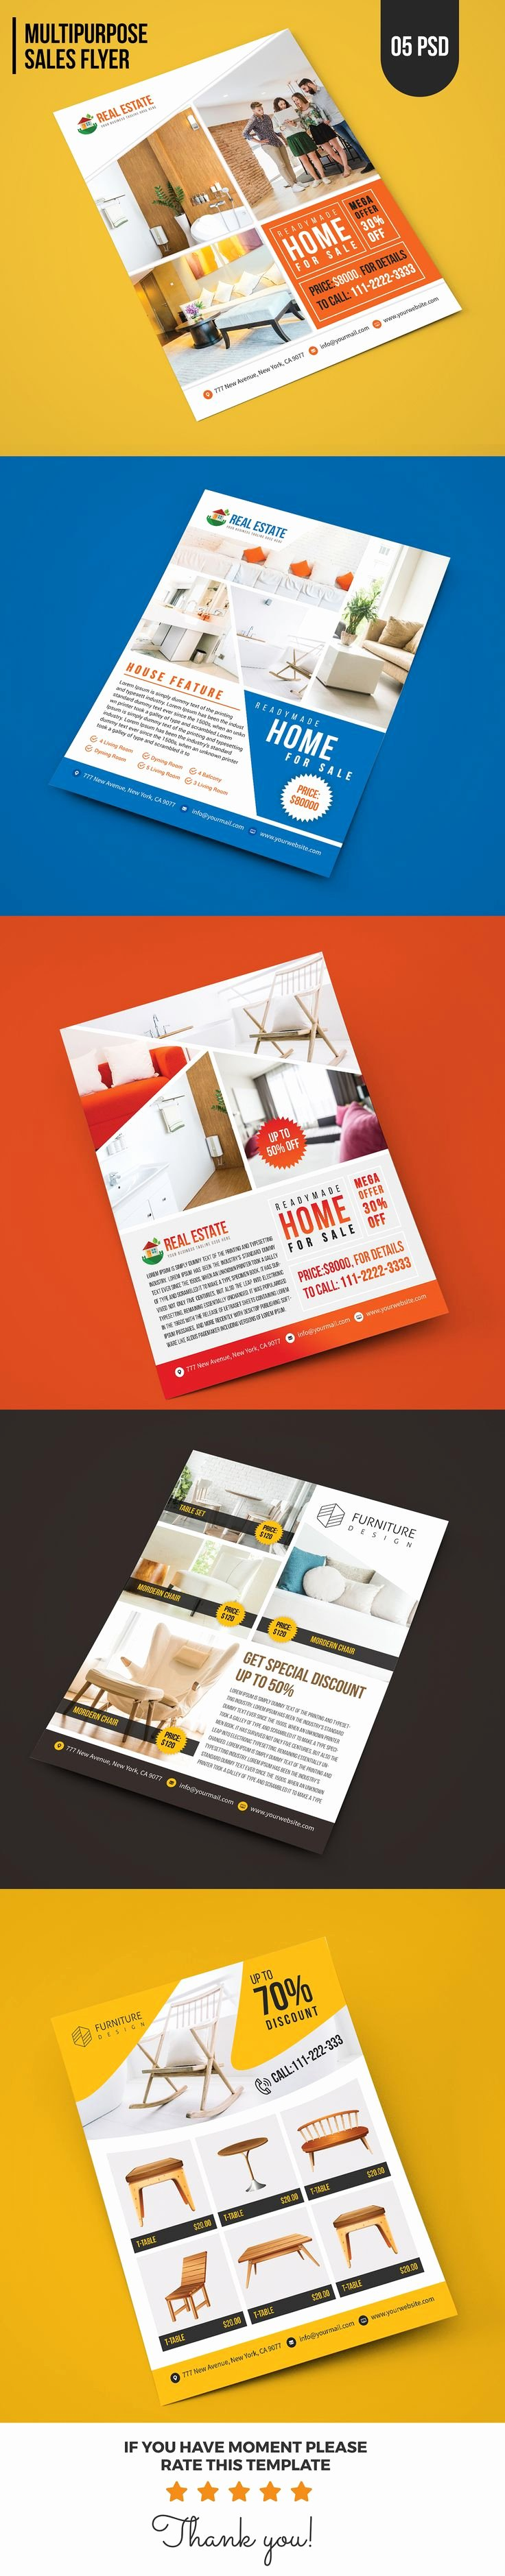 Real Estate Flyer Ideas Best Of Best 25 Real Estate Flyers Ideas On Pinterest